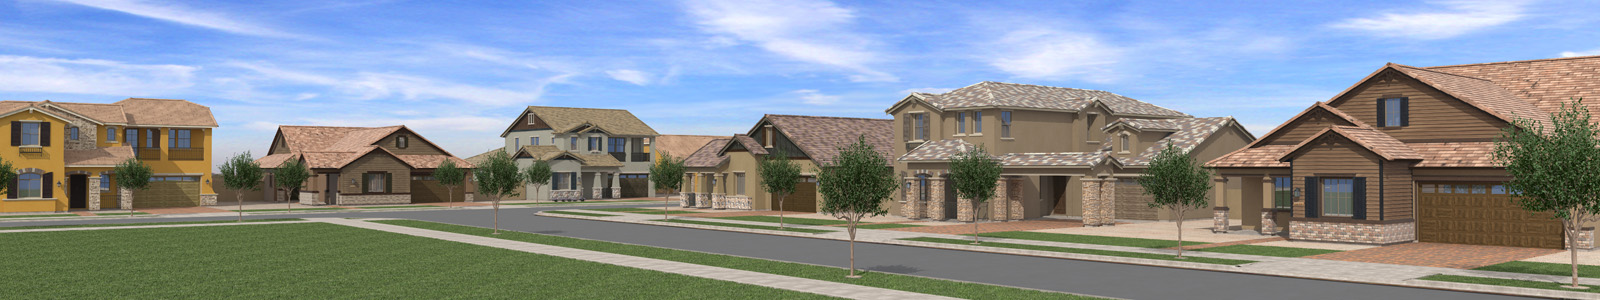 Cooley Station By Fulton Homes